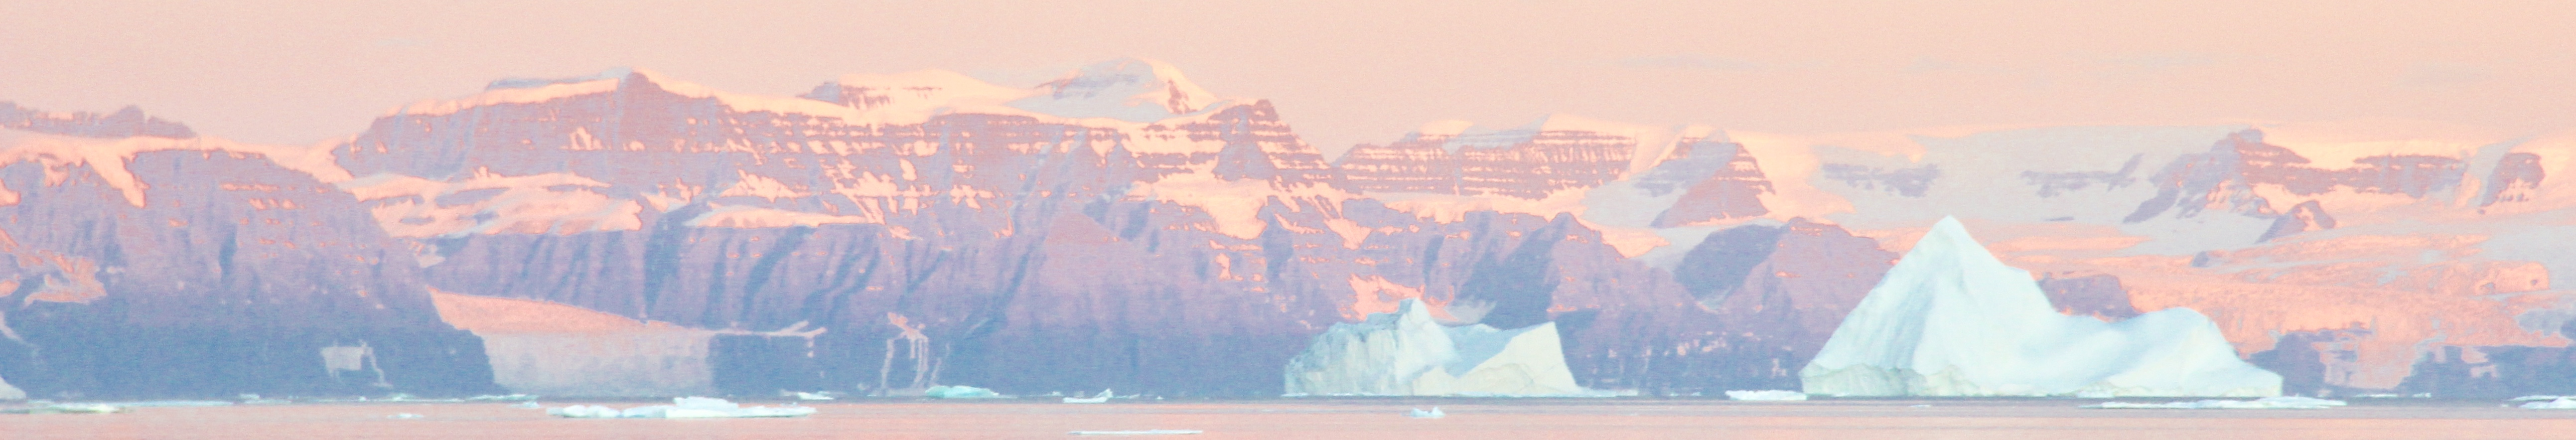 icebergs seen from the tecla